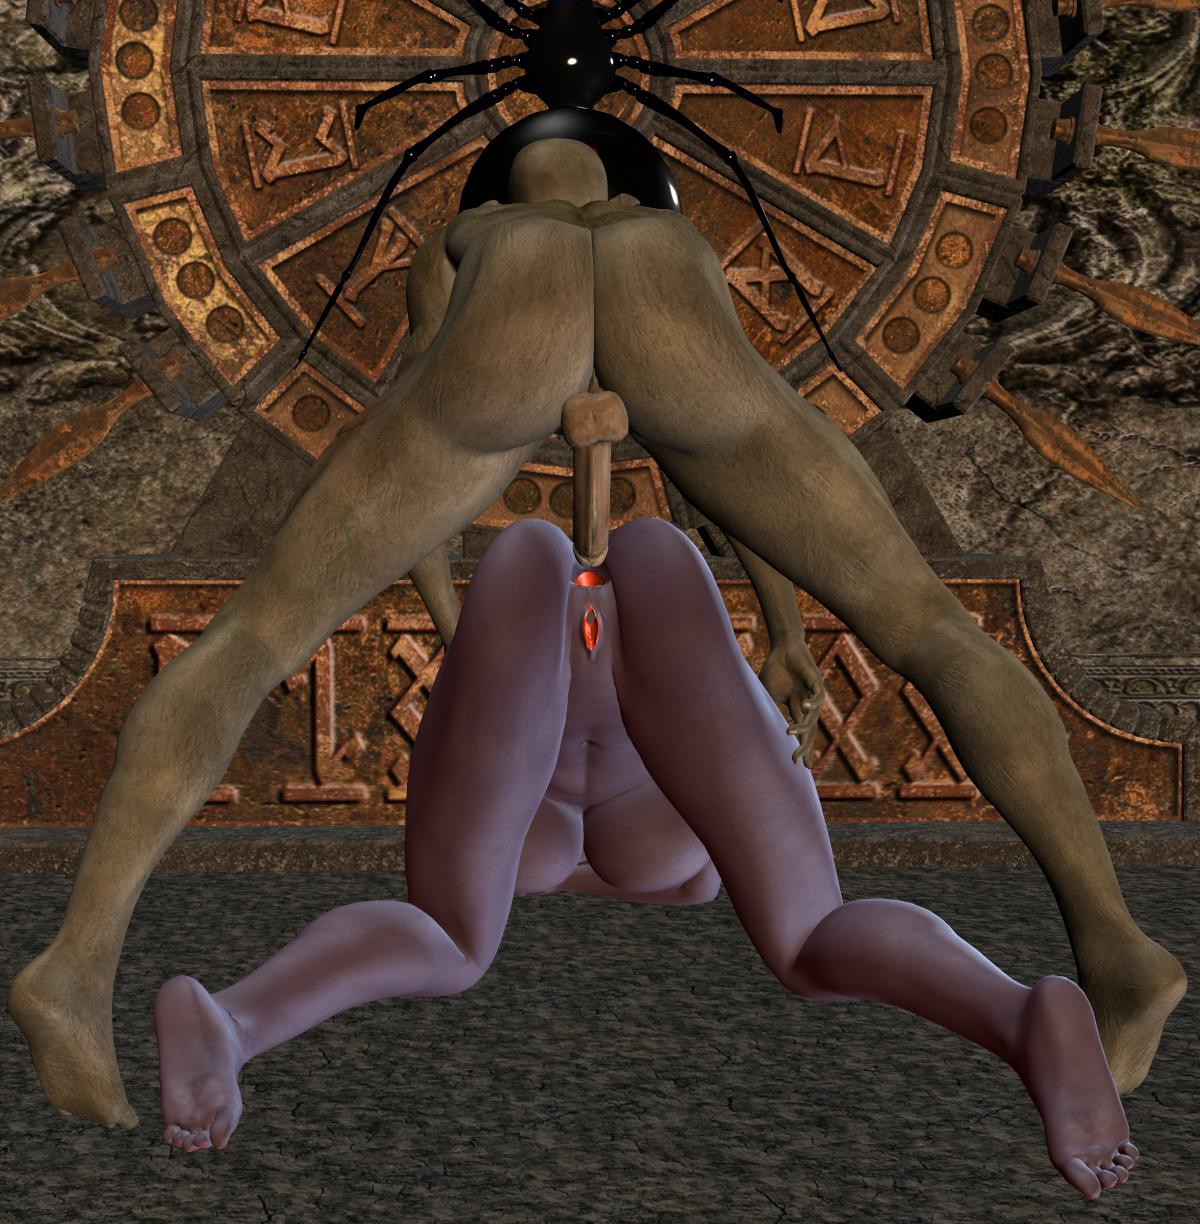 World of warcraft succubus porn pics sex scene